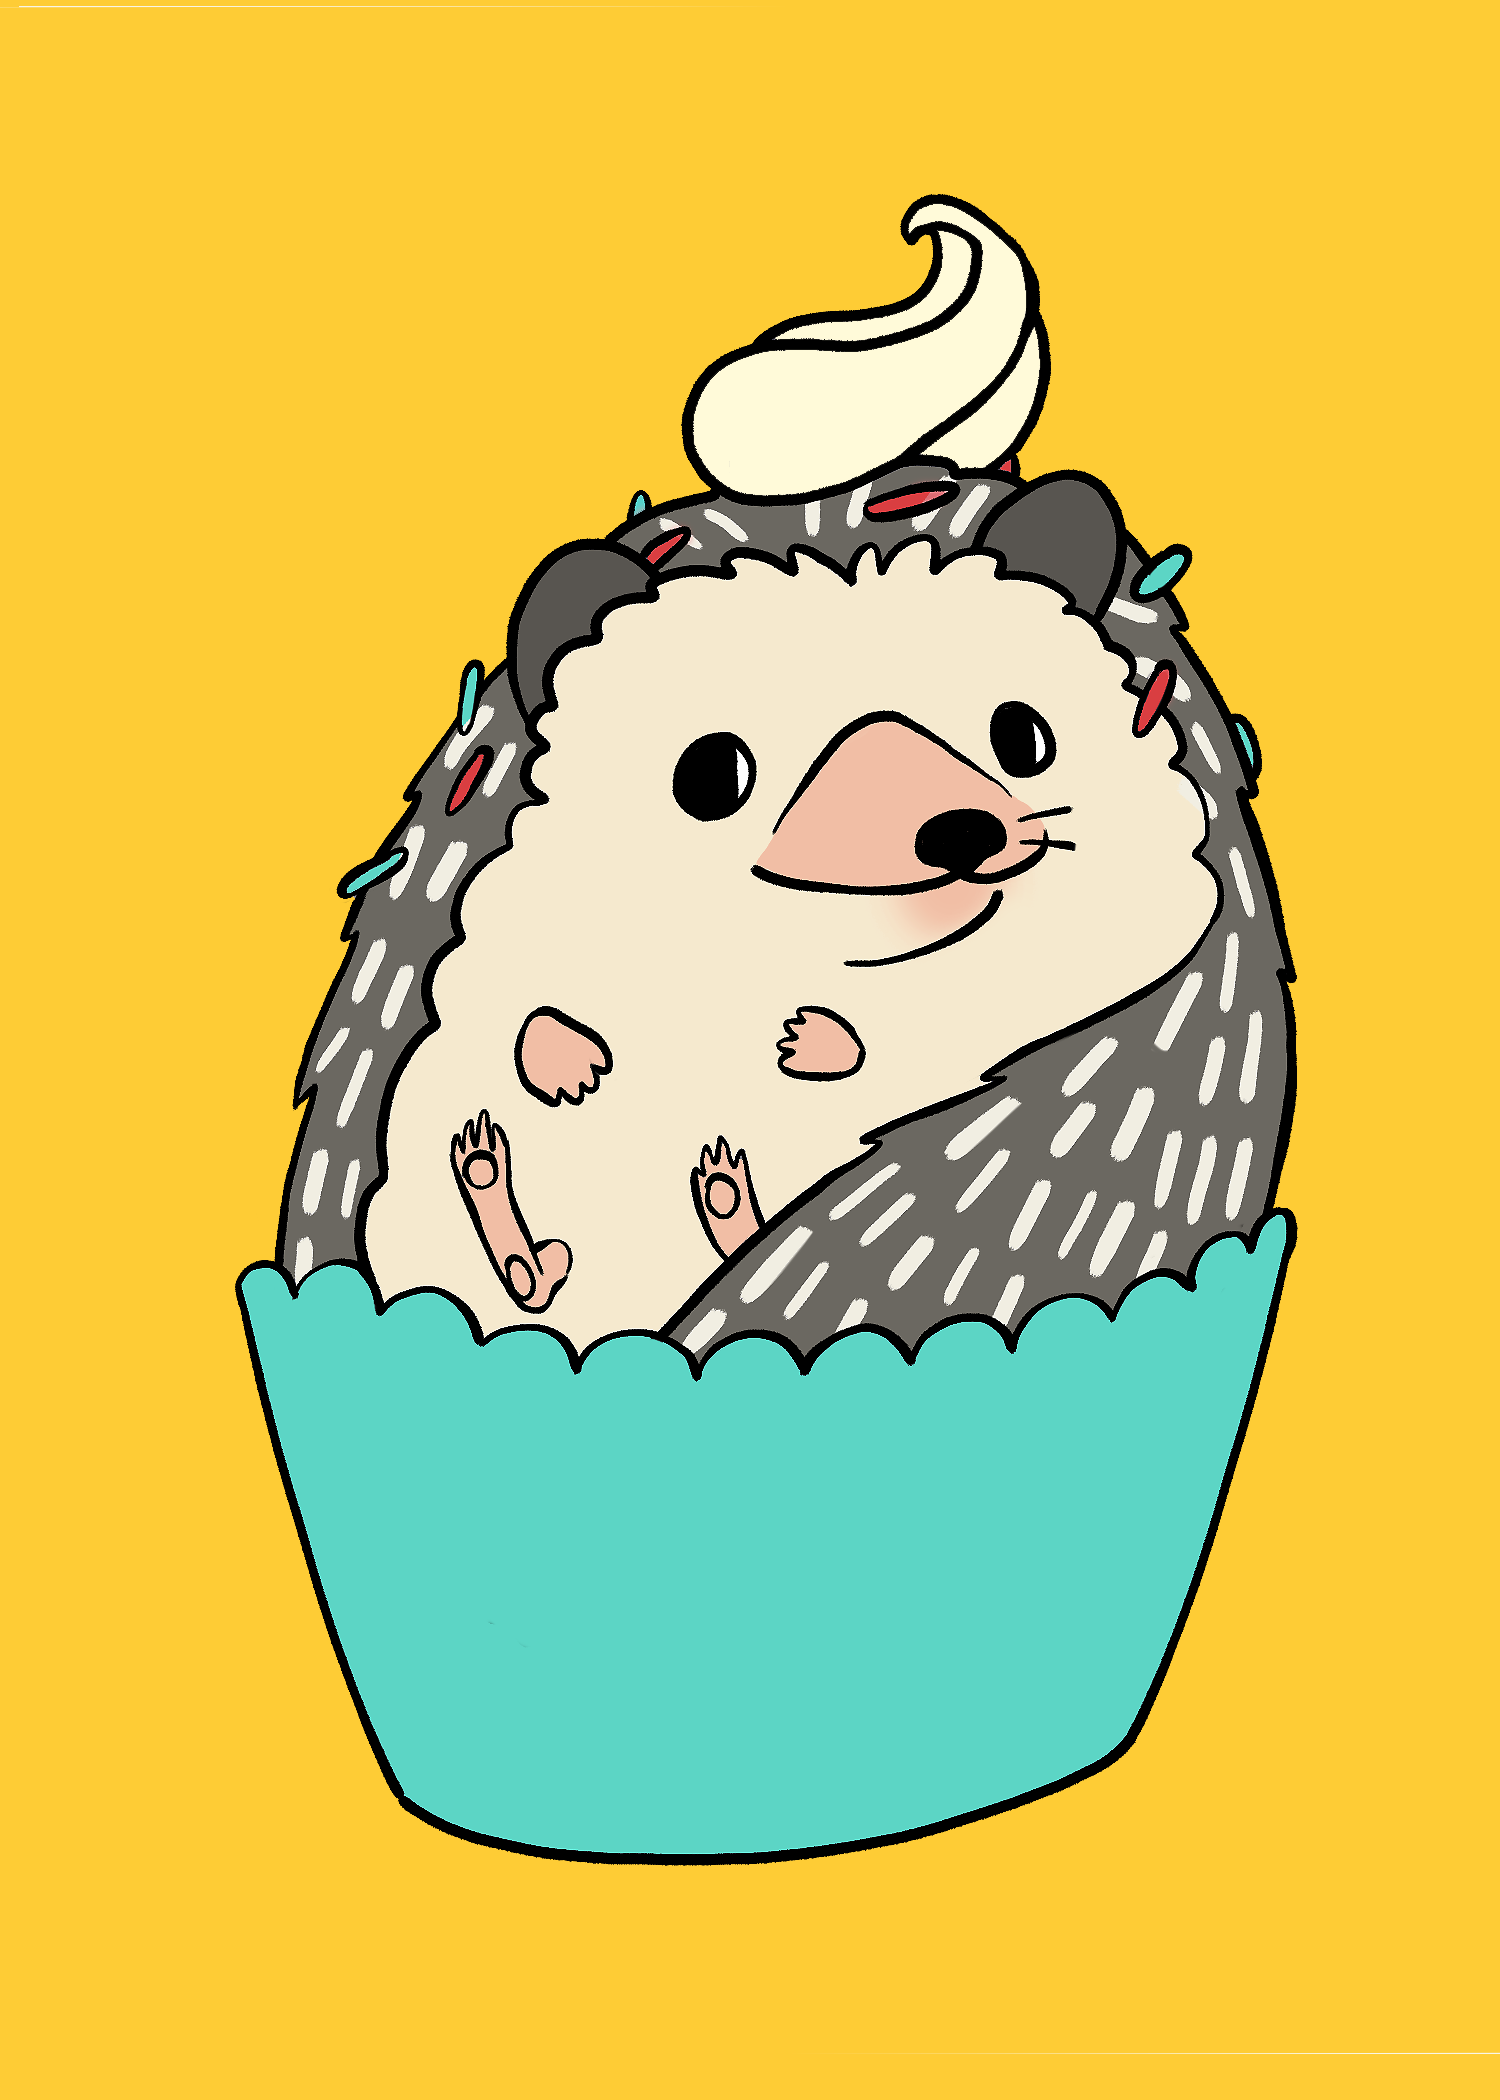 Sprinkles_print-5x7inches.png